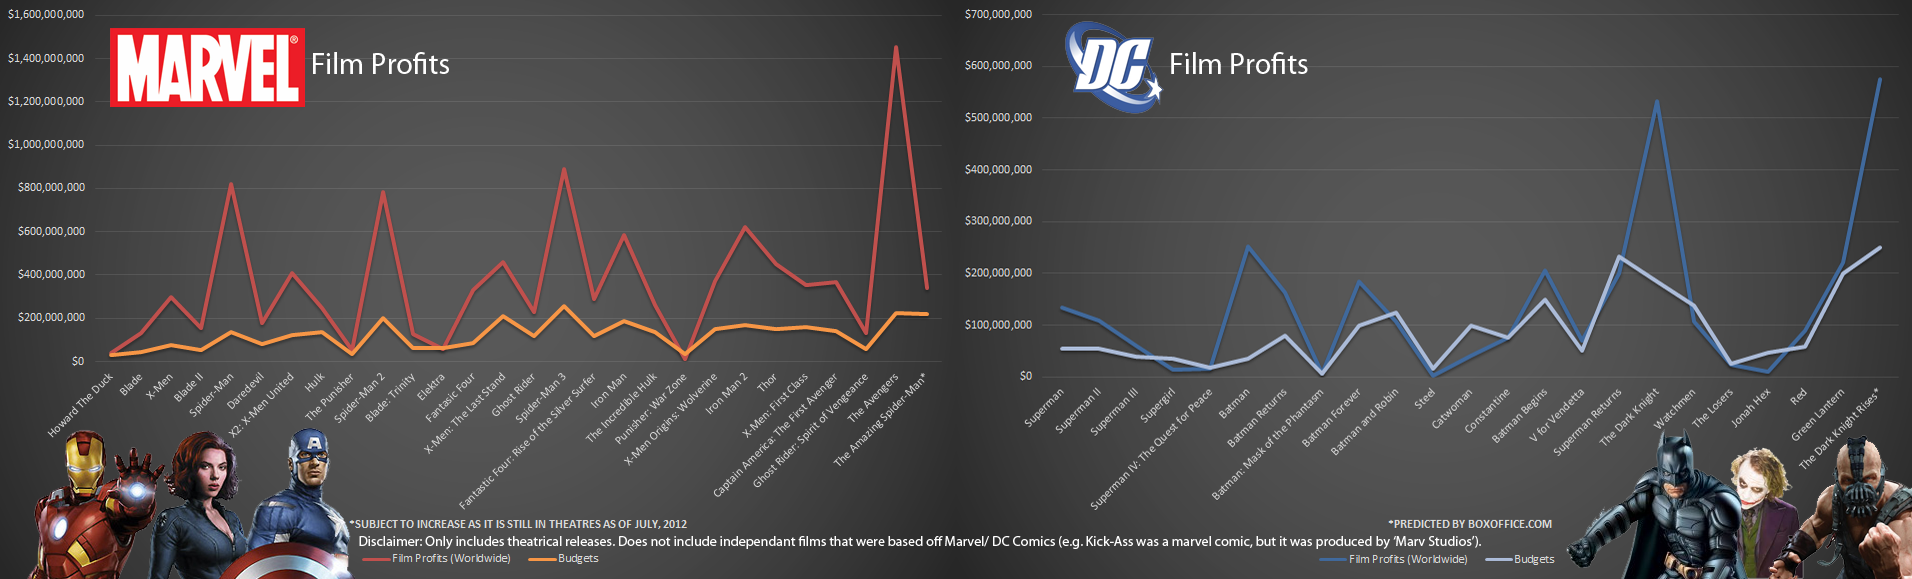 Every theatrical film produced by Marvel and DC with their worldwide profit and budget documented as of July 2012.